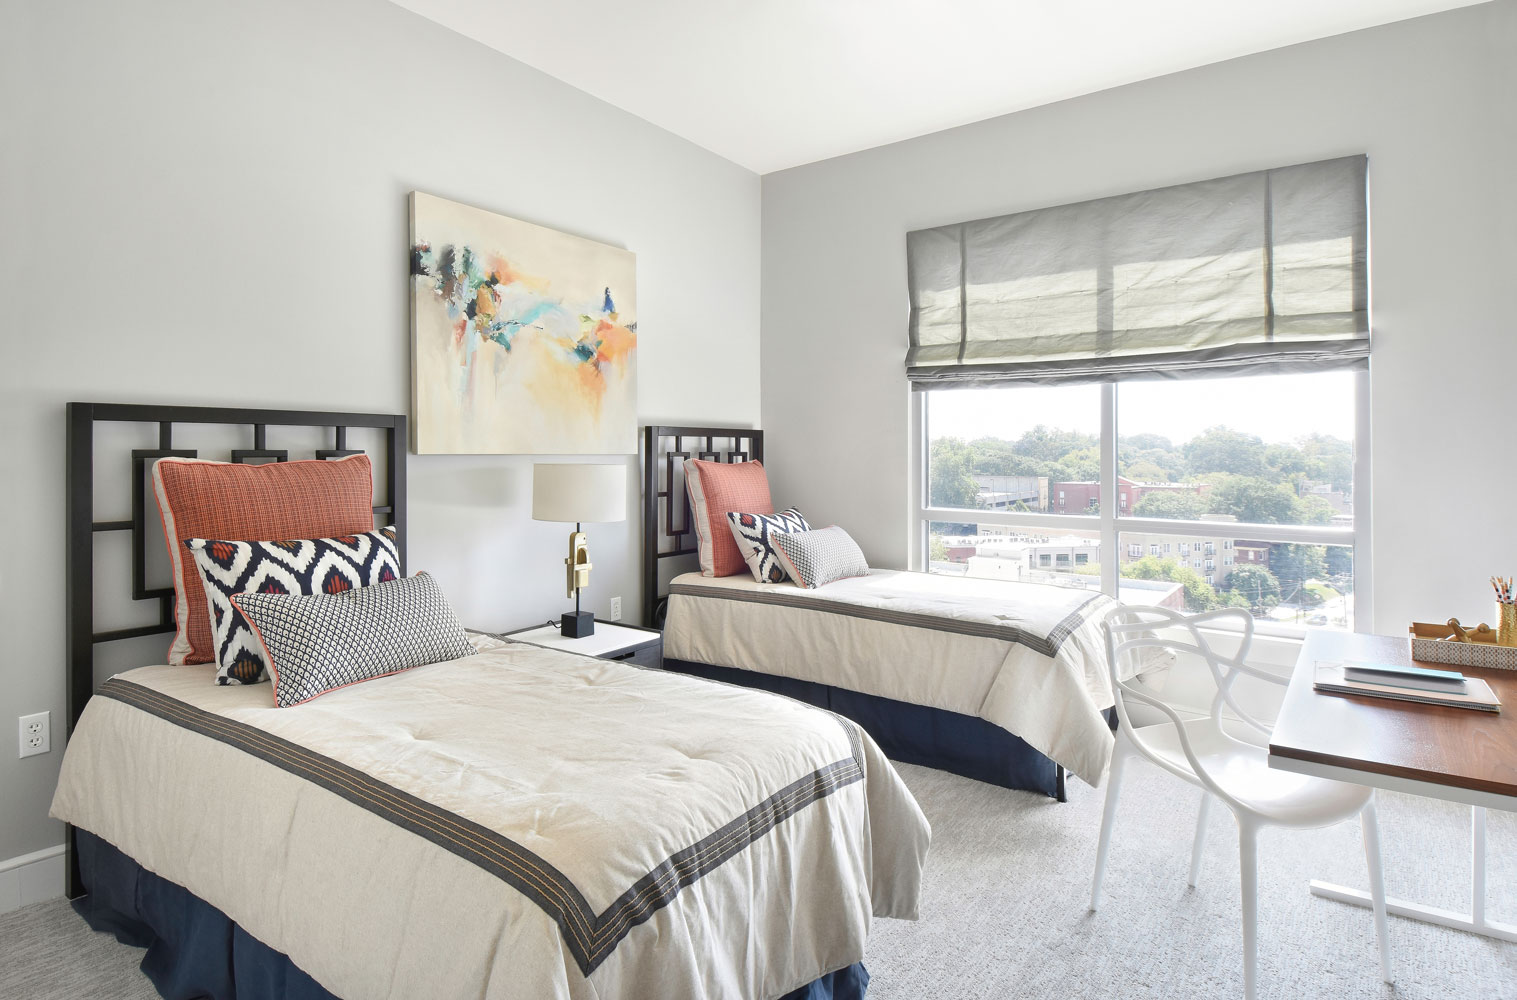 The Luxe guest bedroom interior design in Atlanta